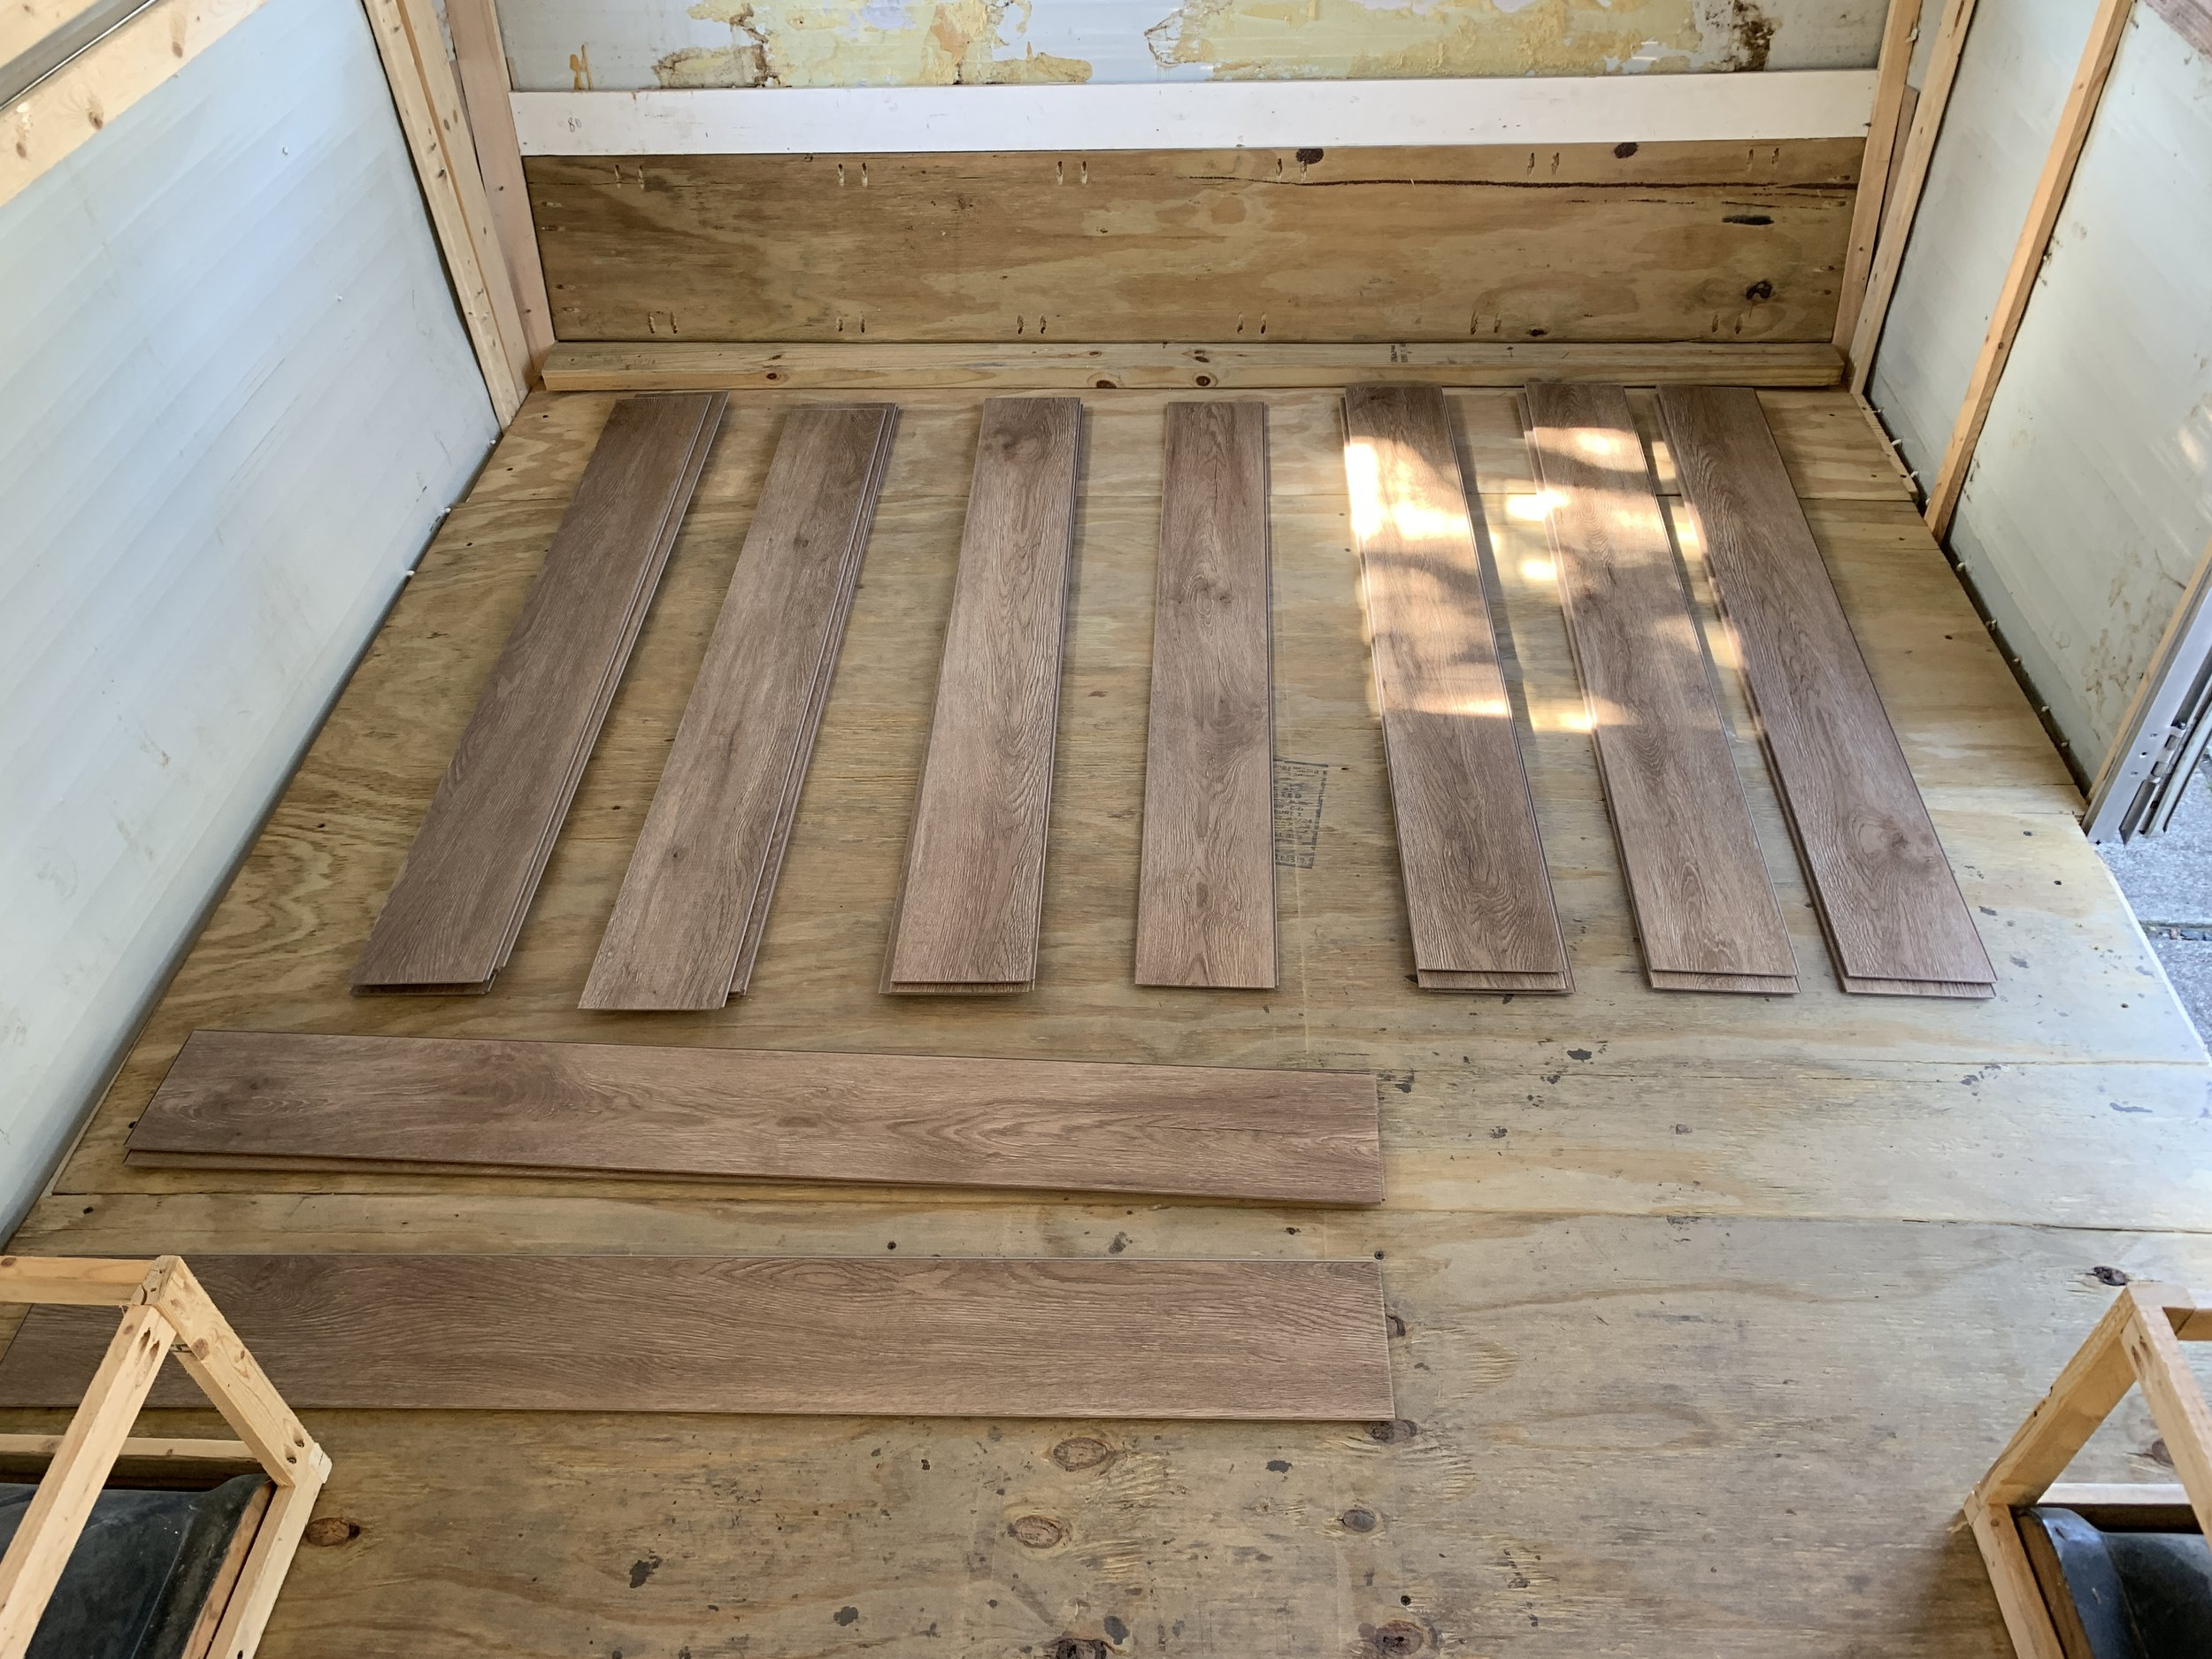 Separated planks by pattern